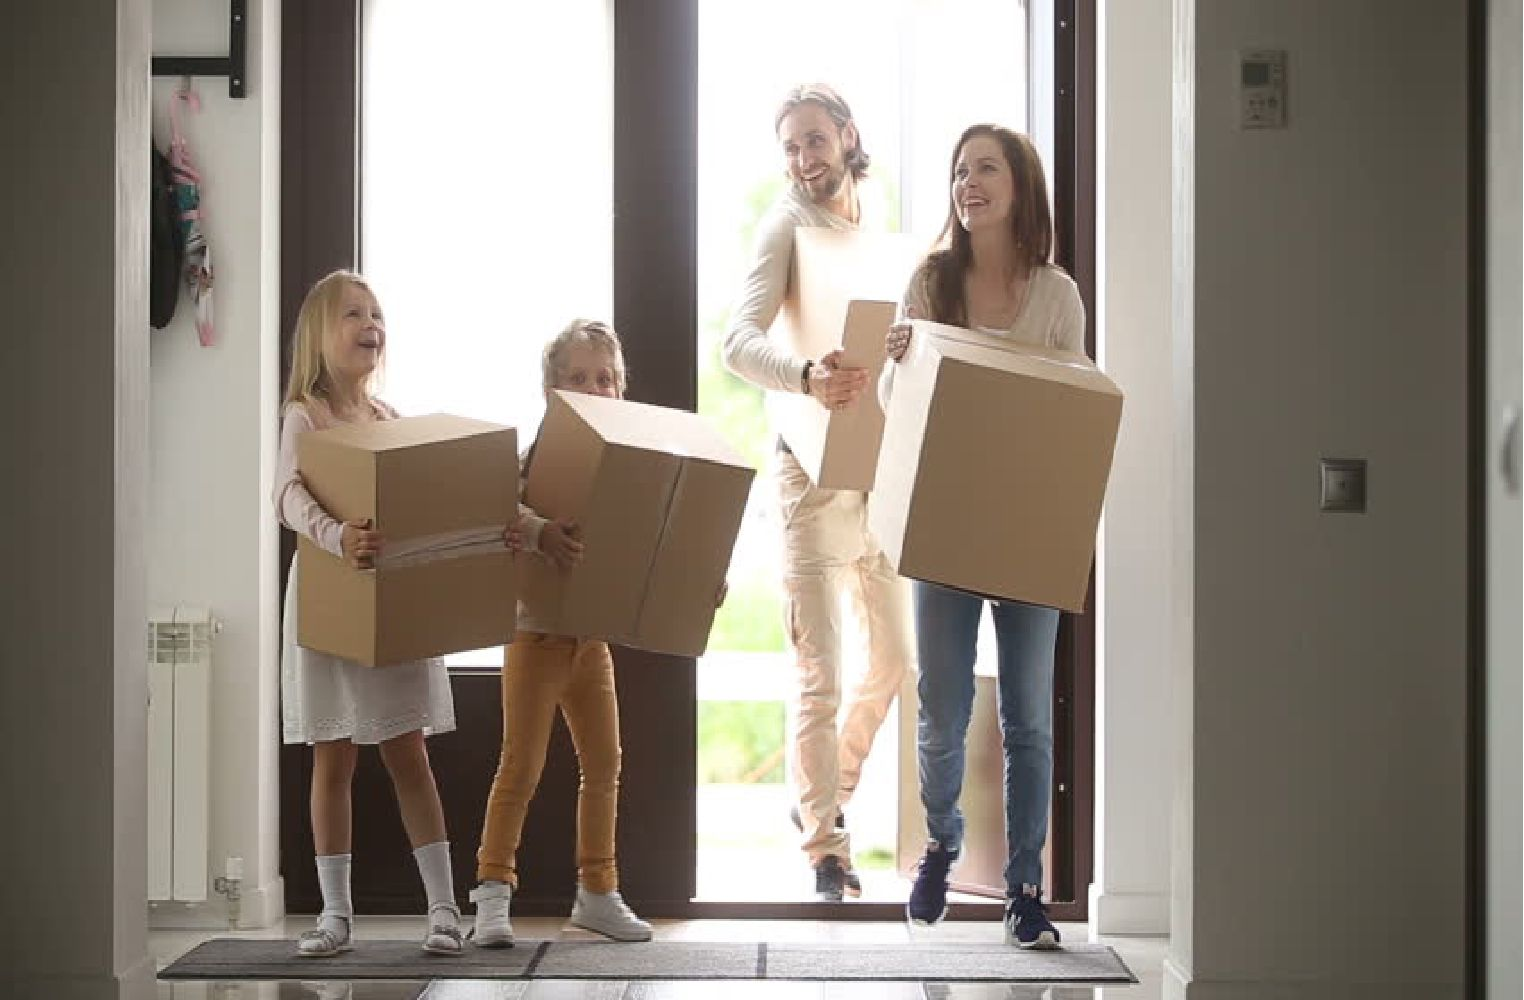 Moving Companies Plano IL   Stock footage, Moving company, Stock video